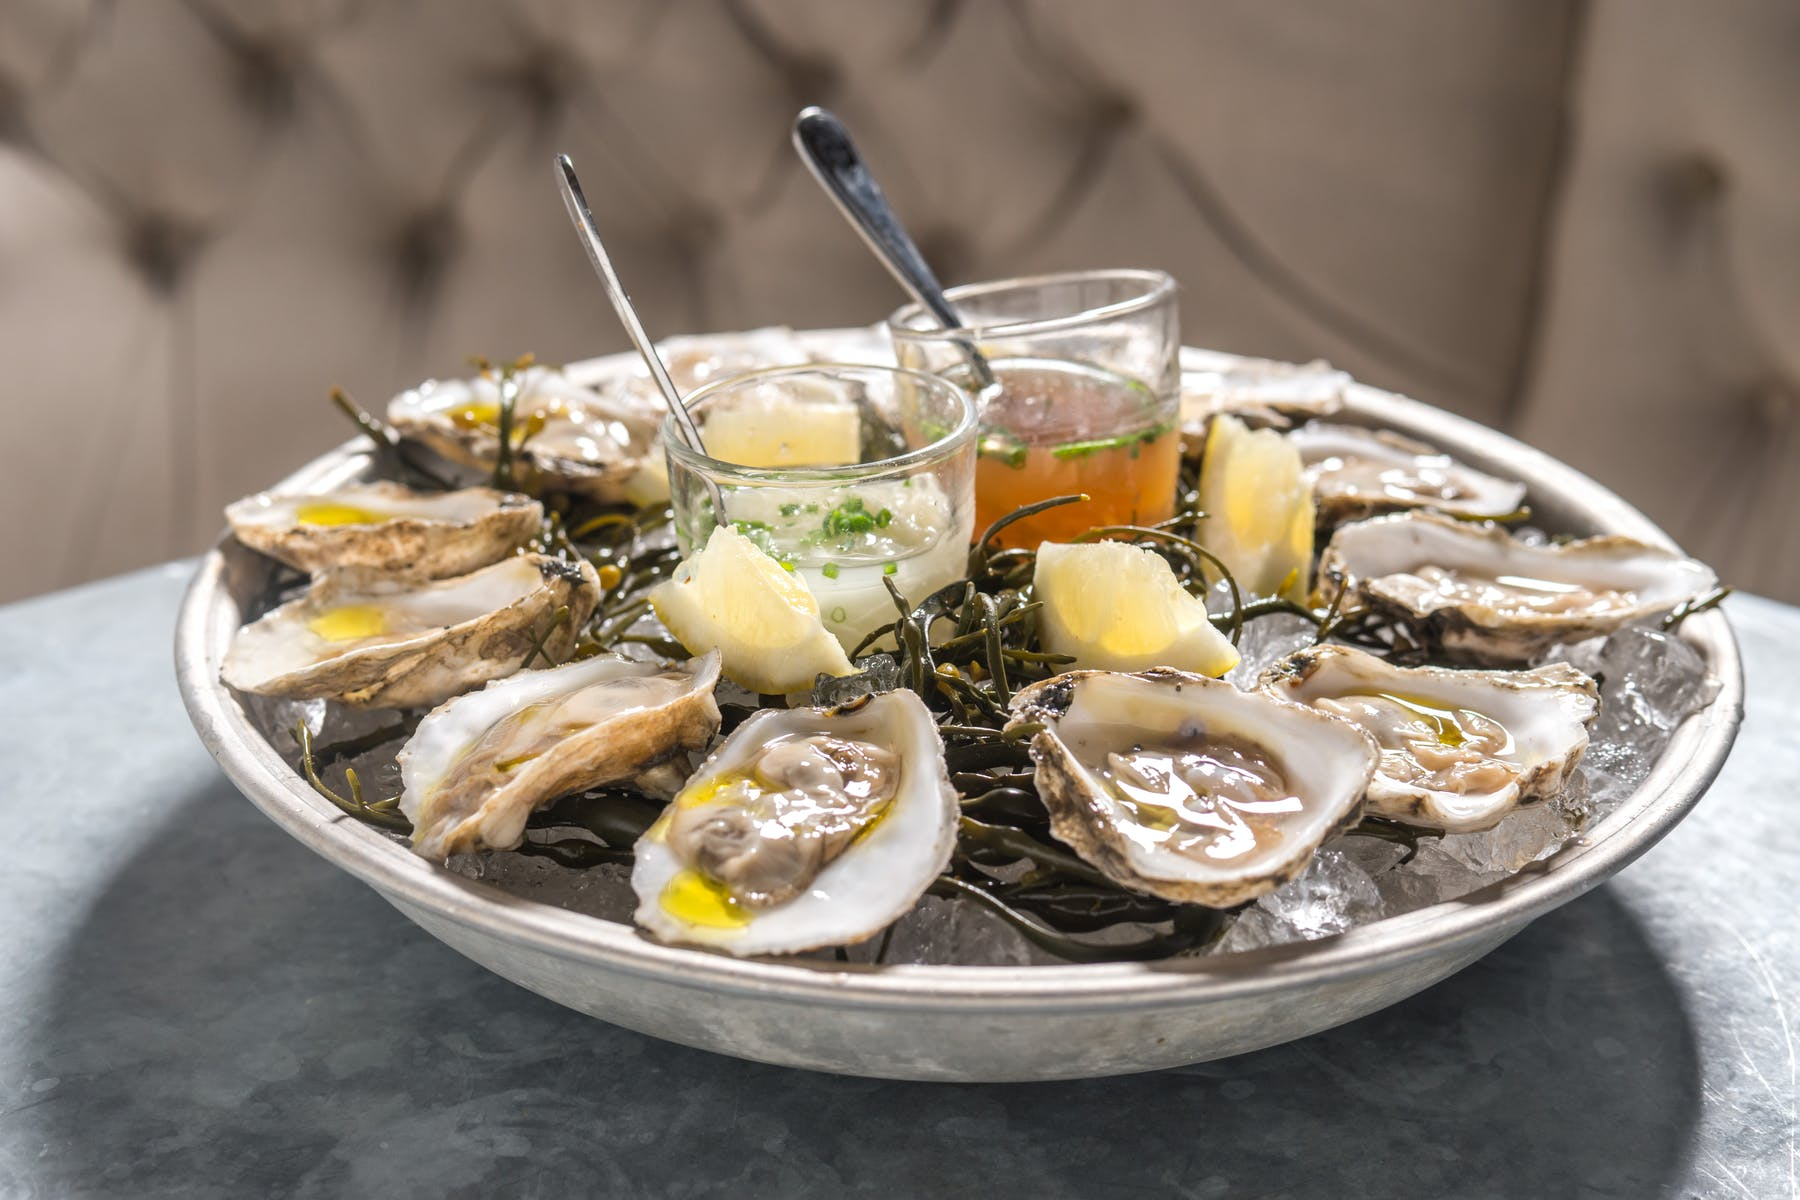 a plate of raw oysters on a table